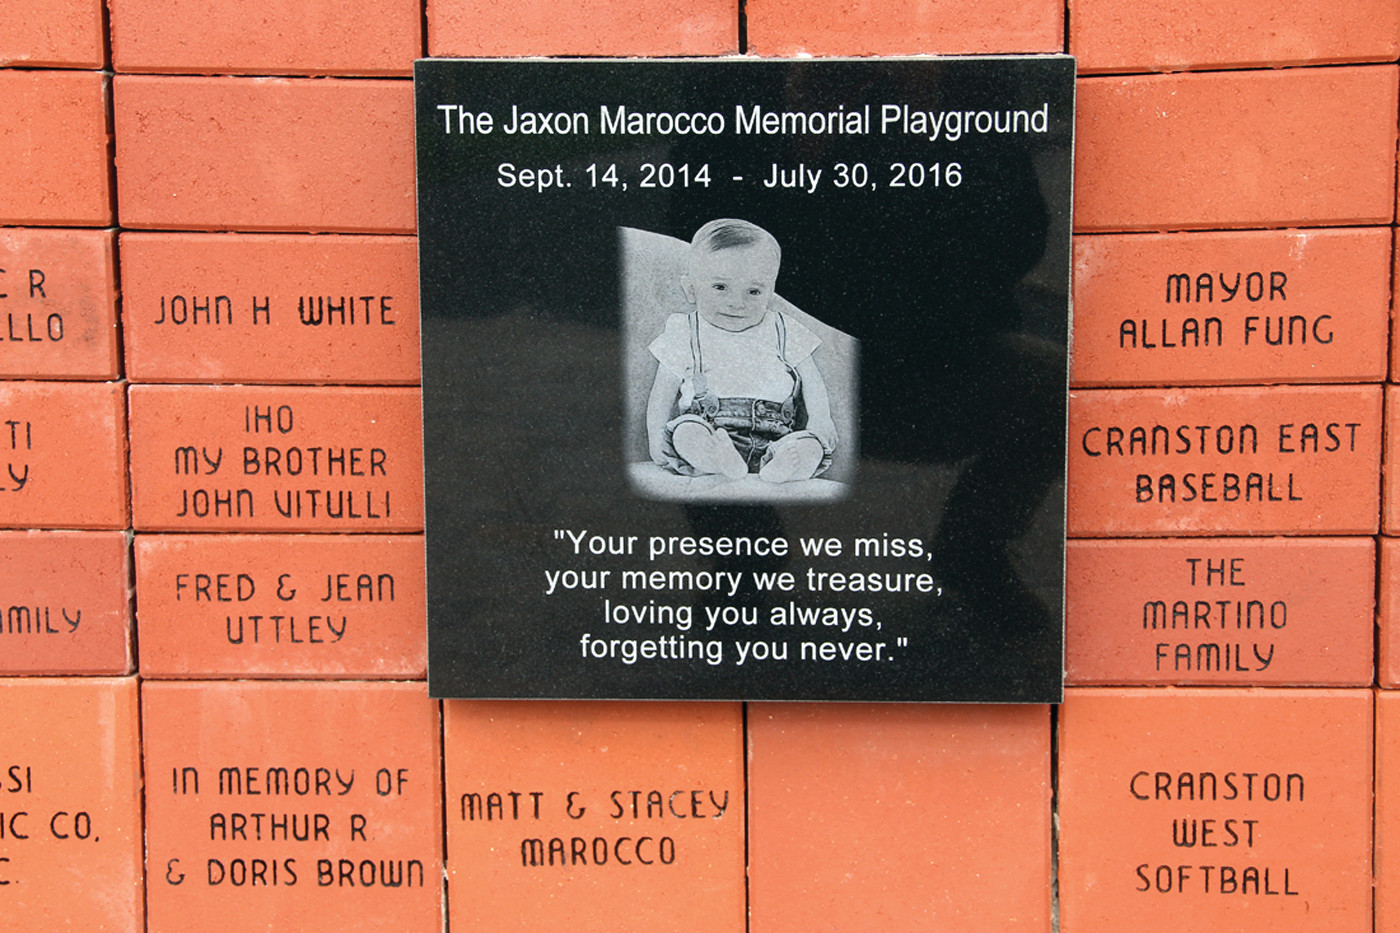 FOR JAXON: The bricks, which were sold to help fund the building of the playground, are set up in front of the playground and center around a plaque to memorialize the late Jaxon Marocco.